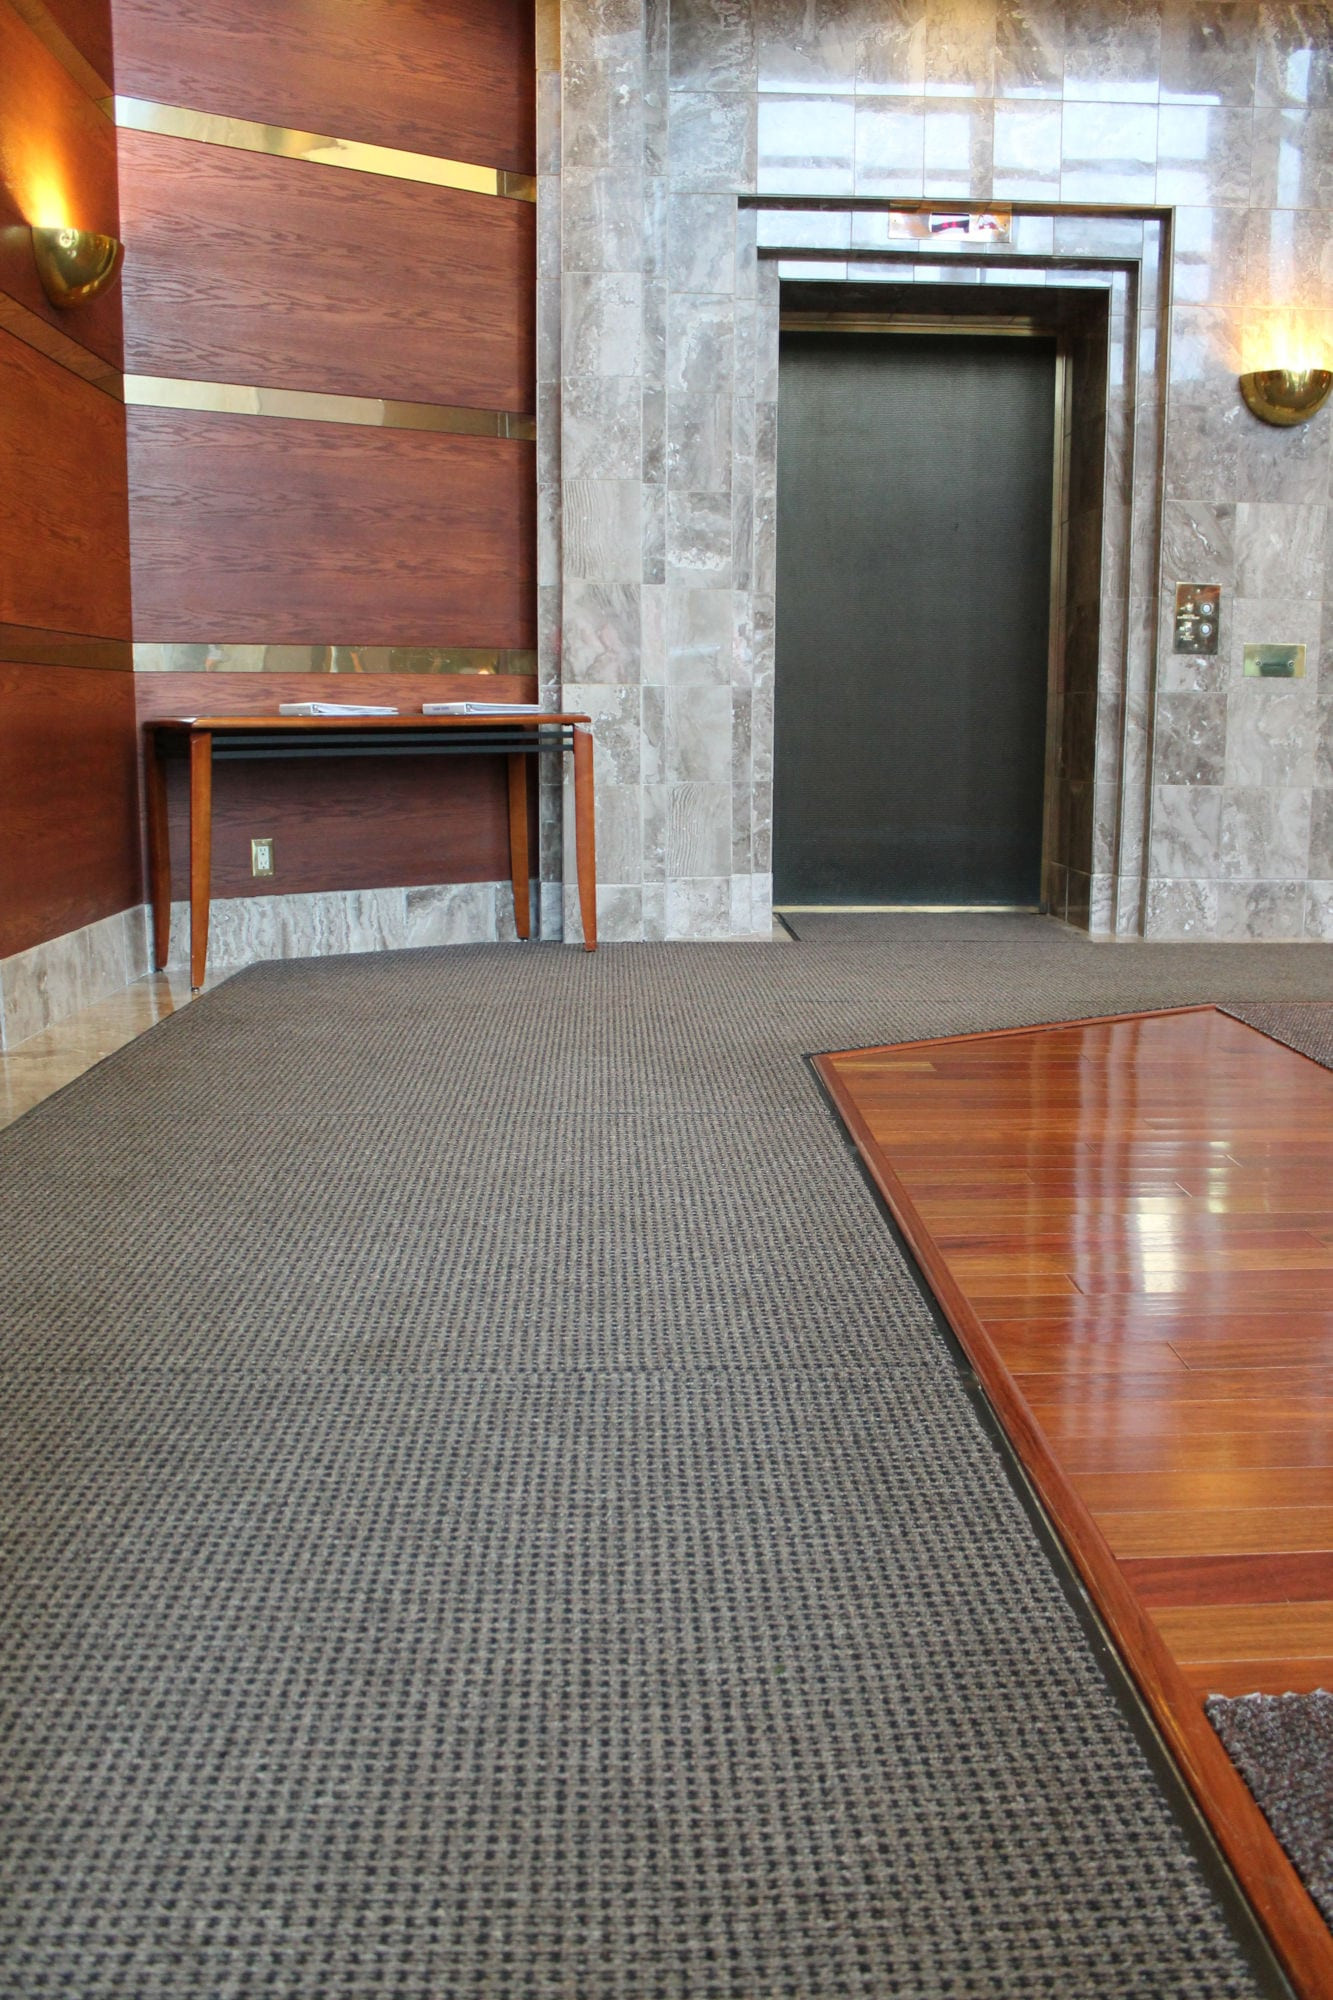 hardwood flooring in ontario california of our work ottawa ontario parliament cleaning group intended for interior view of entrance matting at the saint george ottawa